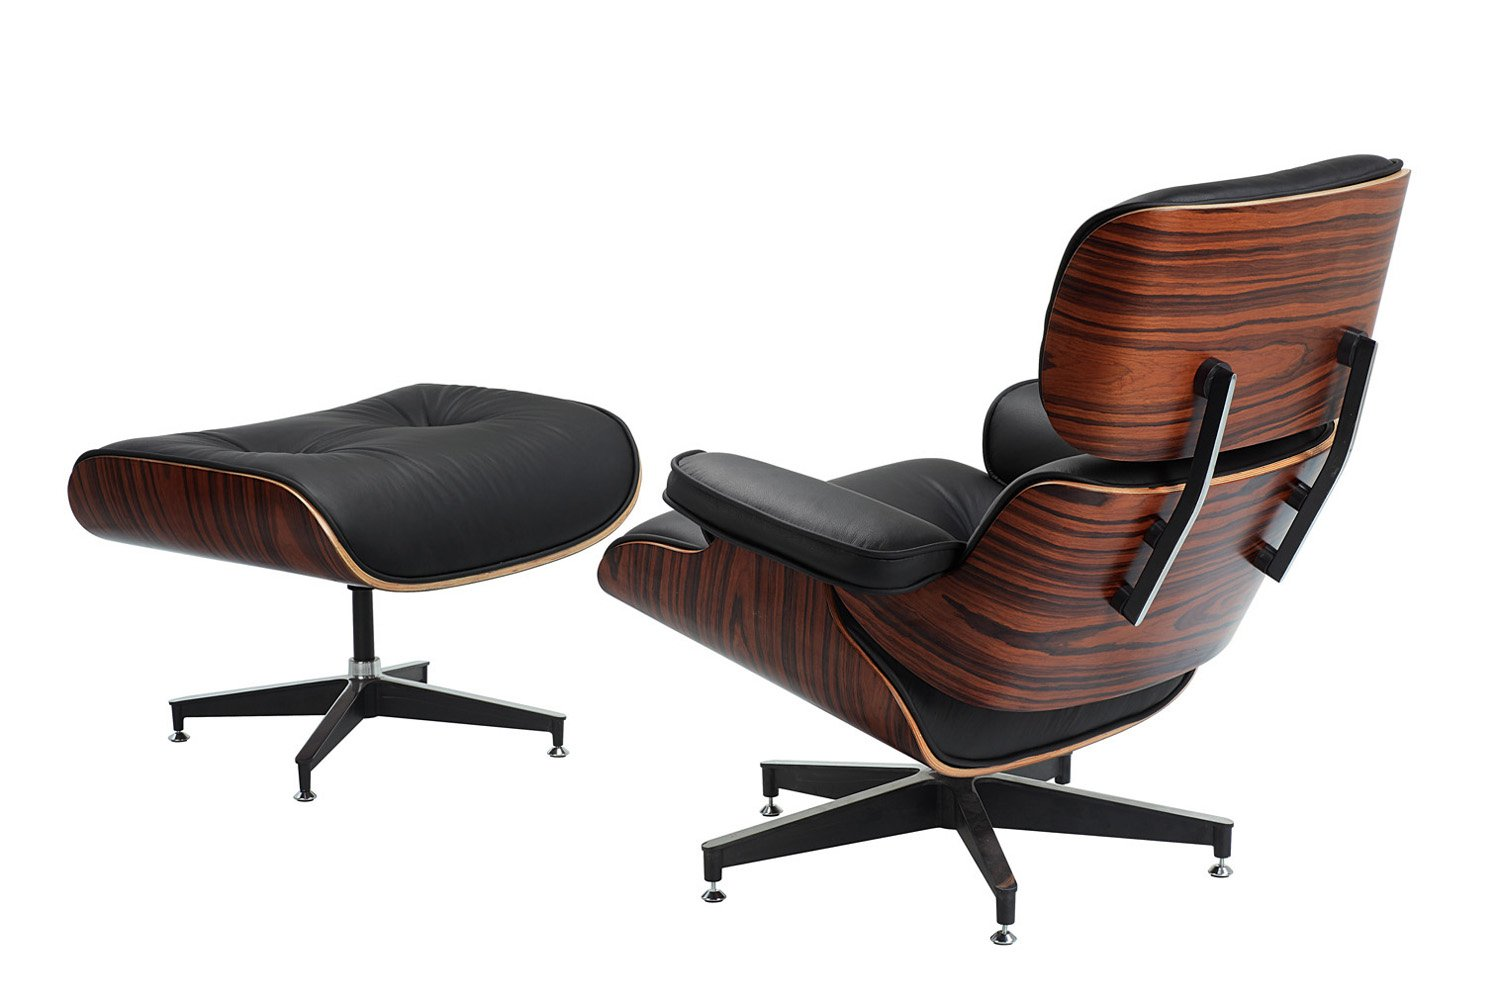 Tremendous Eames Lounge Chair Stuff About Stuff Uwap Interior Chair Design Uwaporg